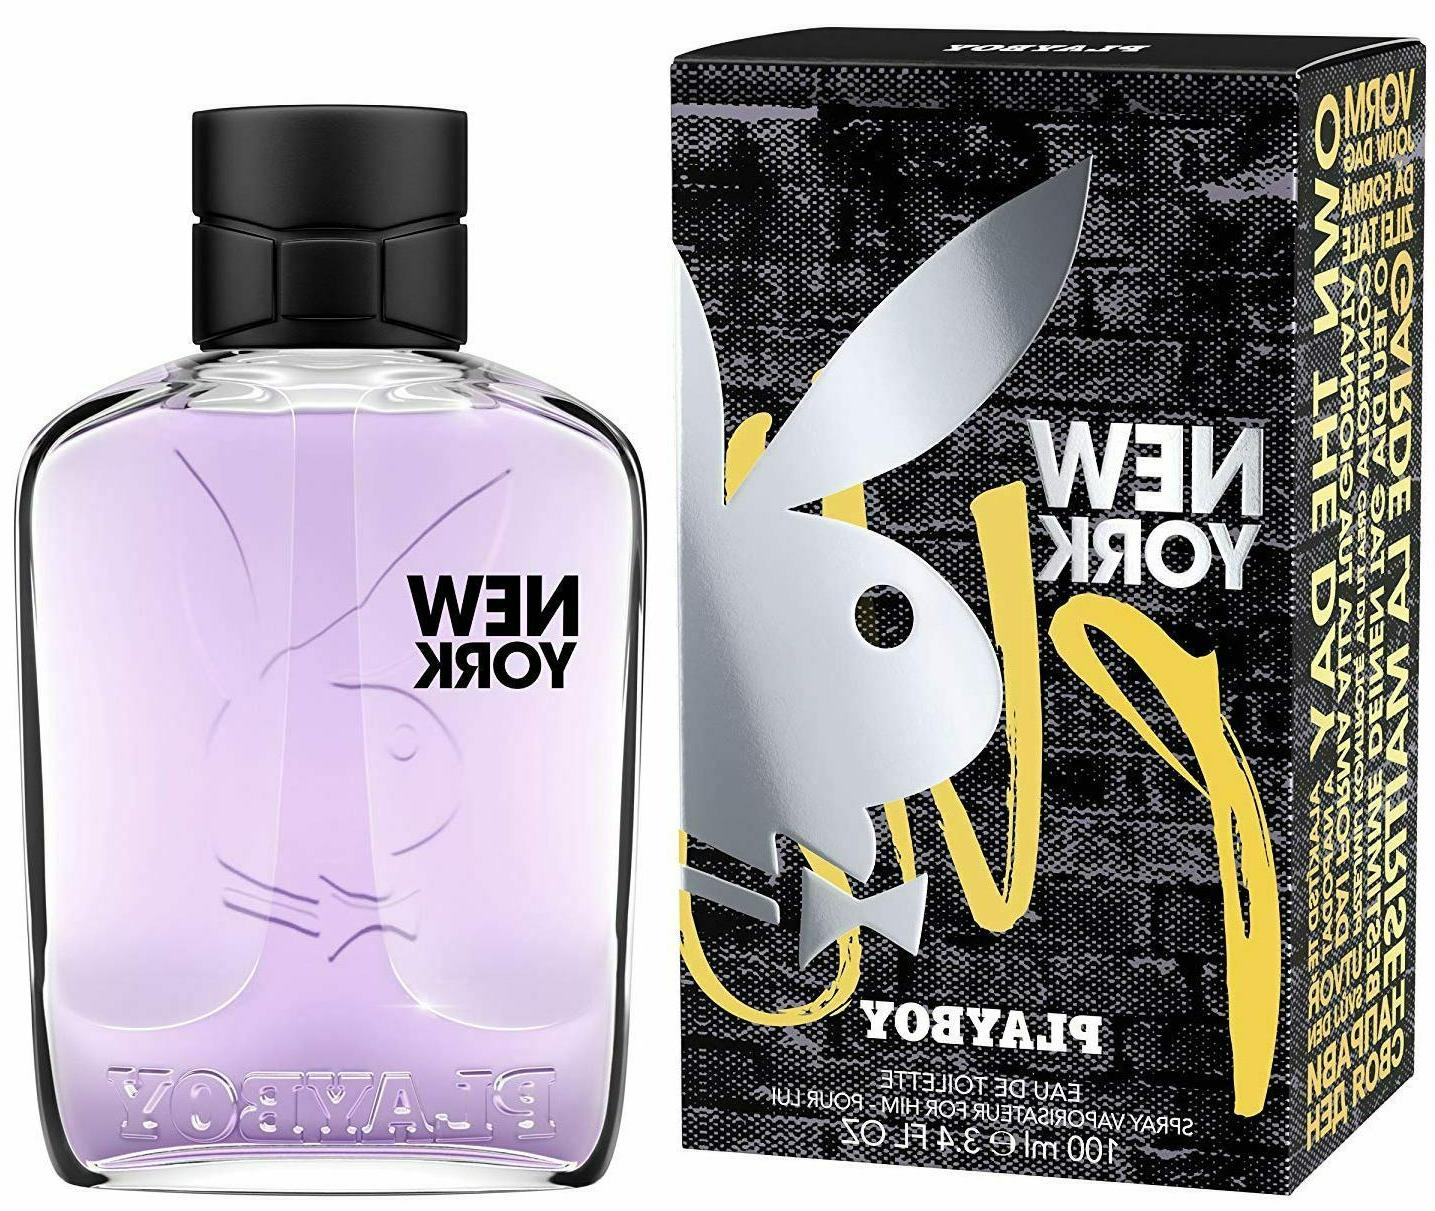 PLAYBOY NEW YORK by PLAYBOY Cologne for Men 3.4 oz edt Spray